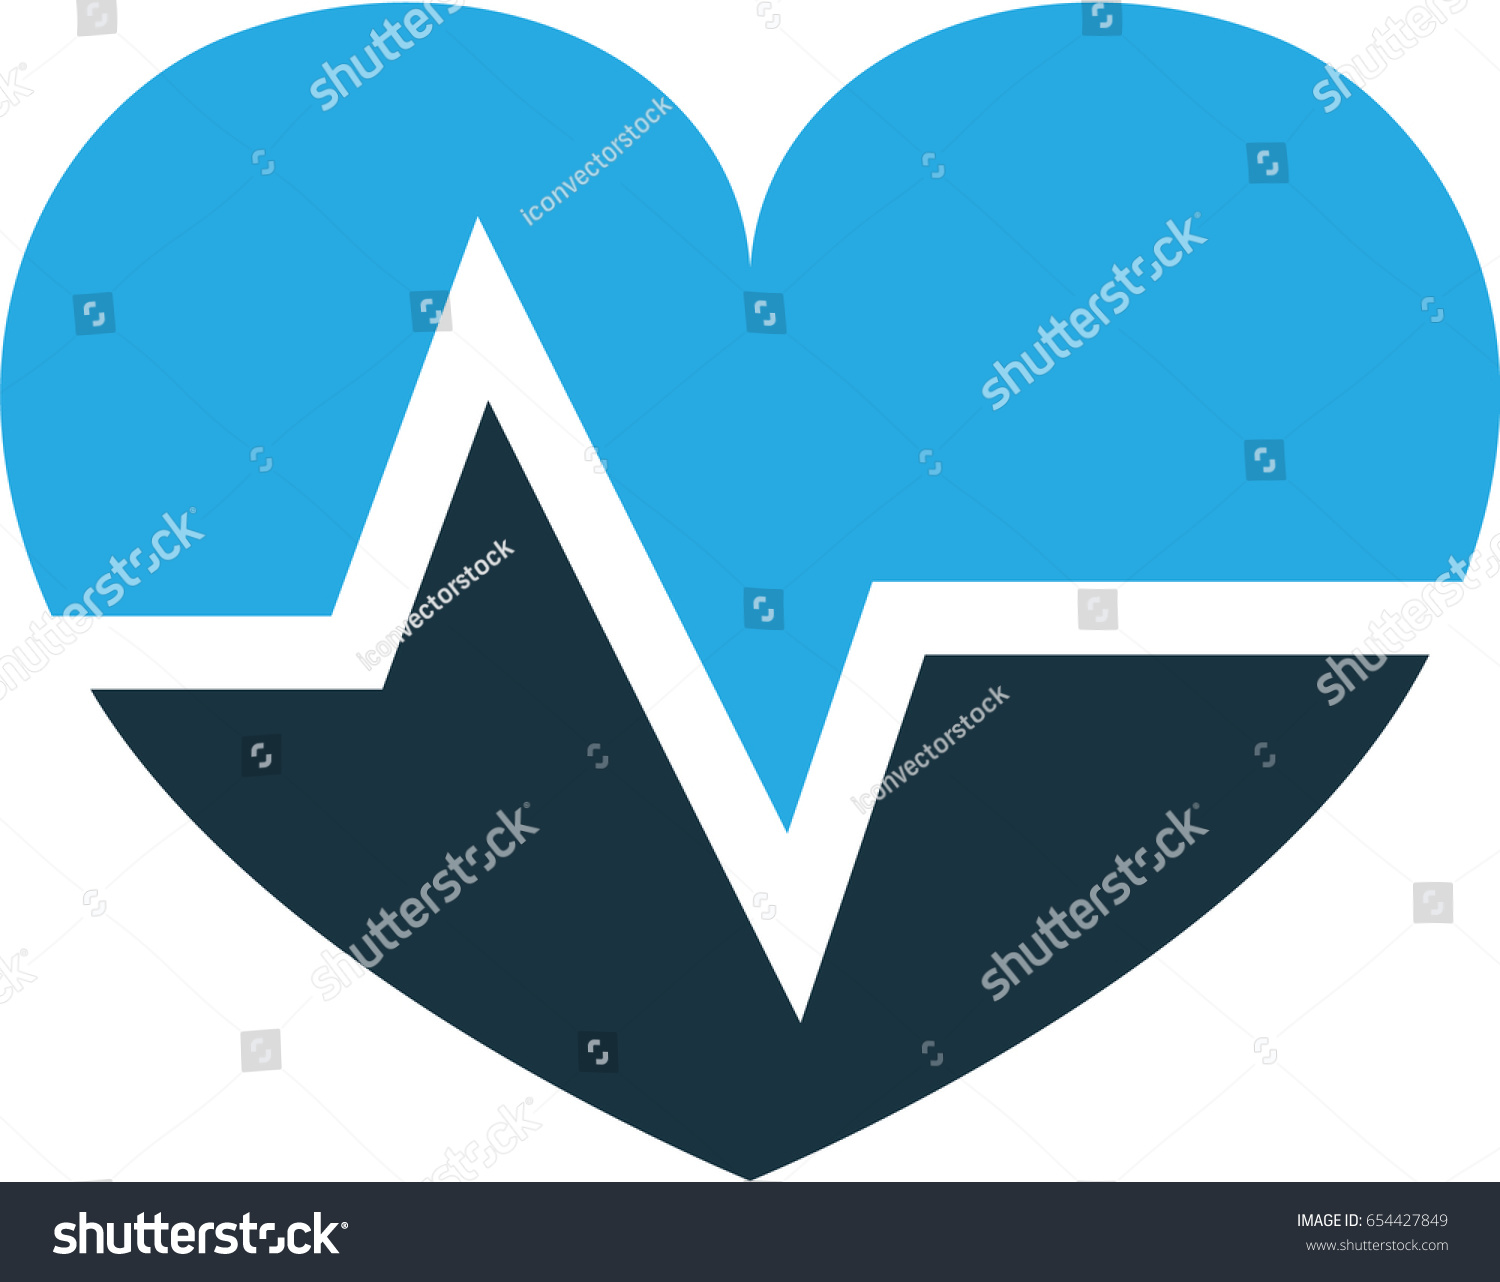 hight resolution of pulse colorful icon symbol premium quality isolated heartbeat element in trendy style